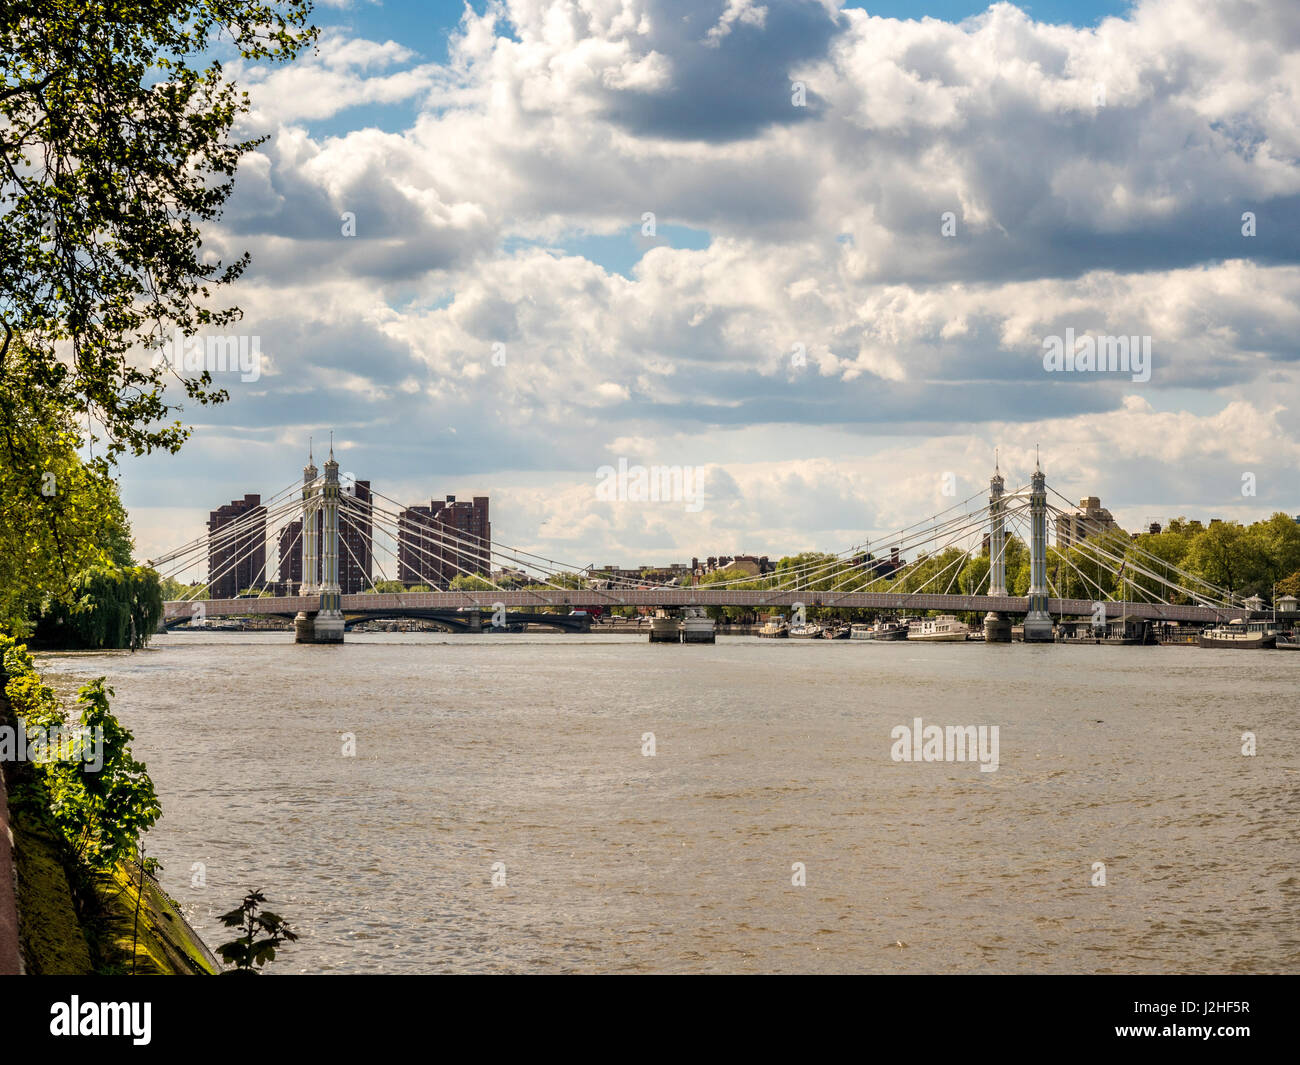 The Albert Bridge over the River Thames in West London, connecting Chelsea  to Battersea. - Stock Image